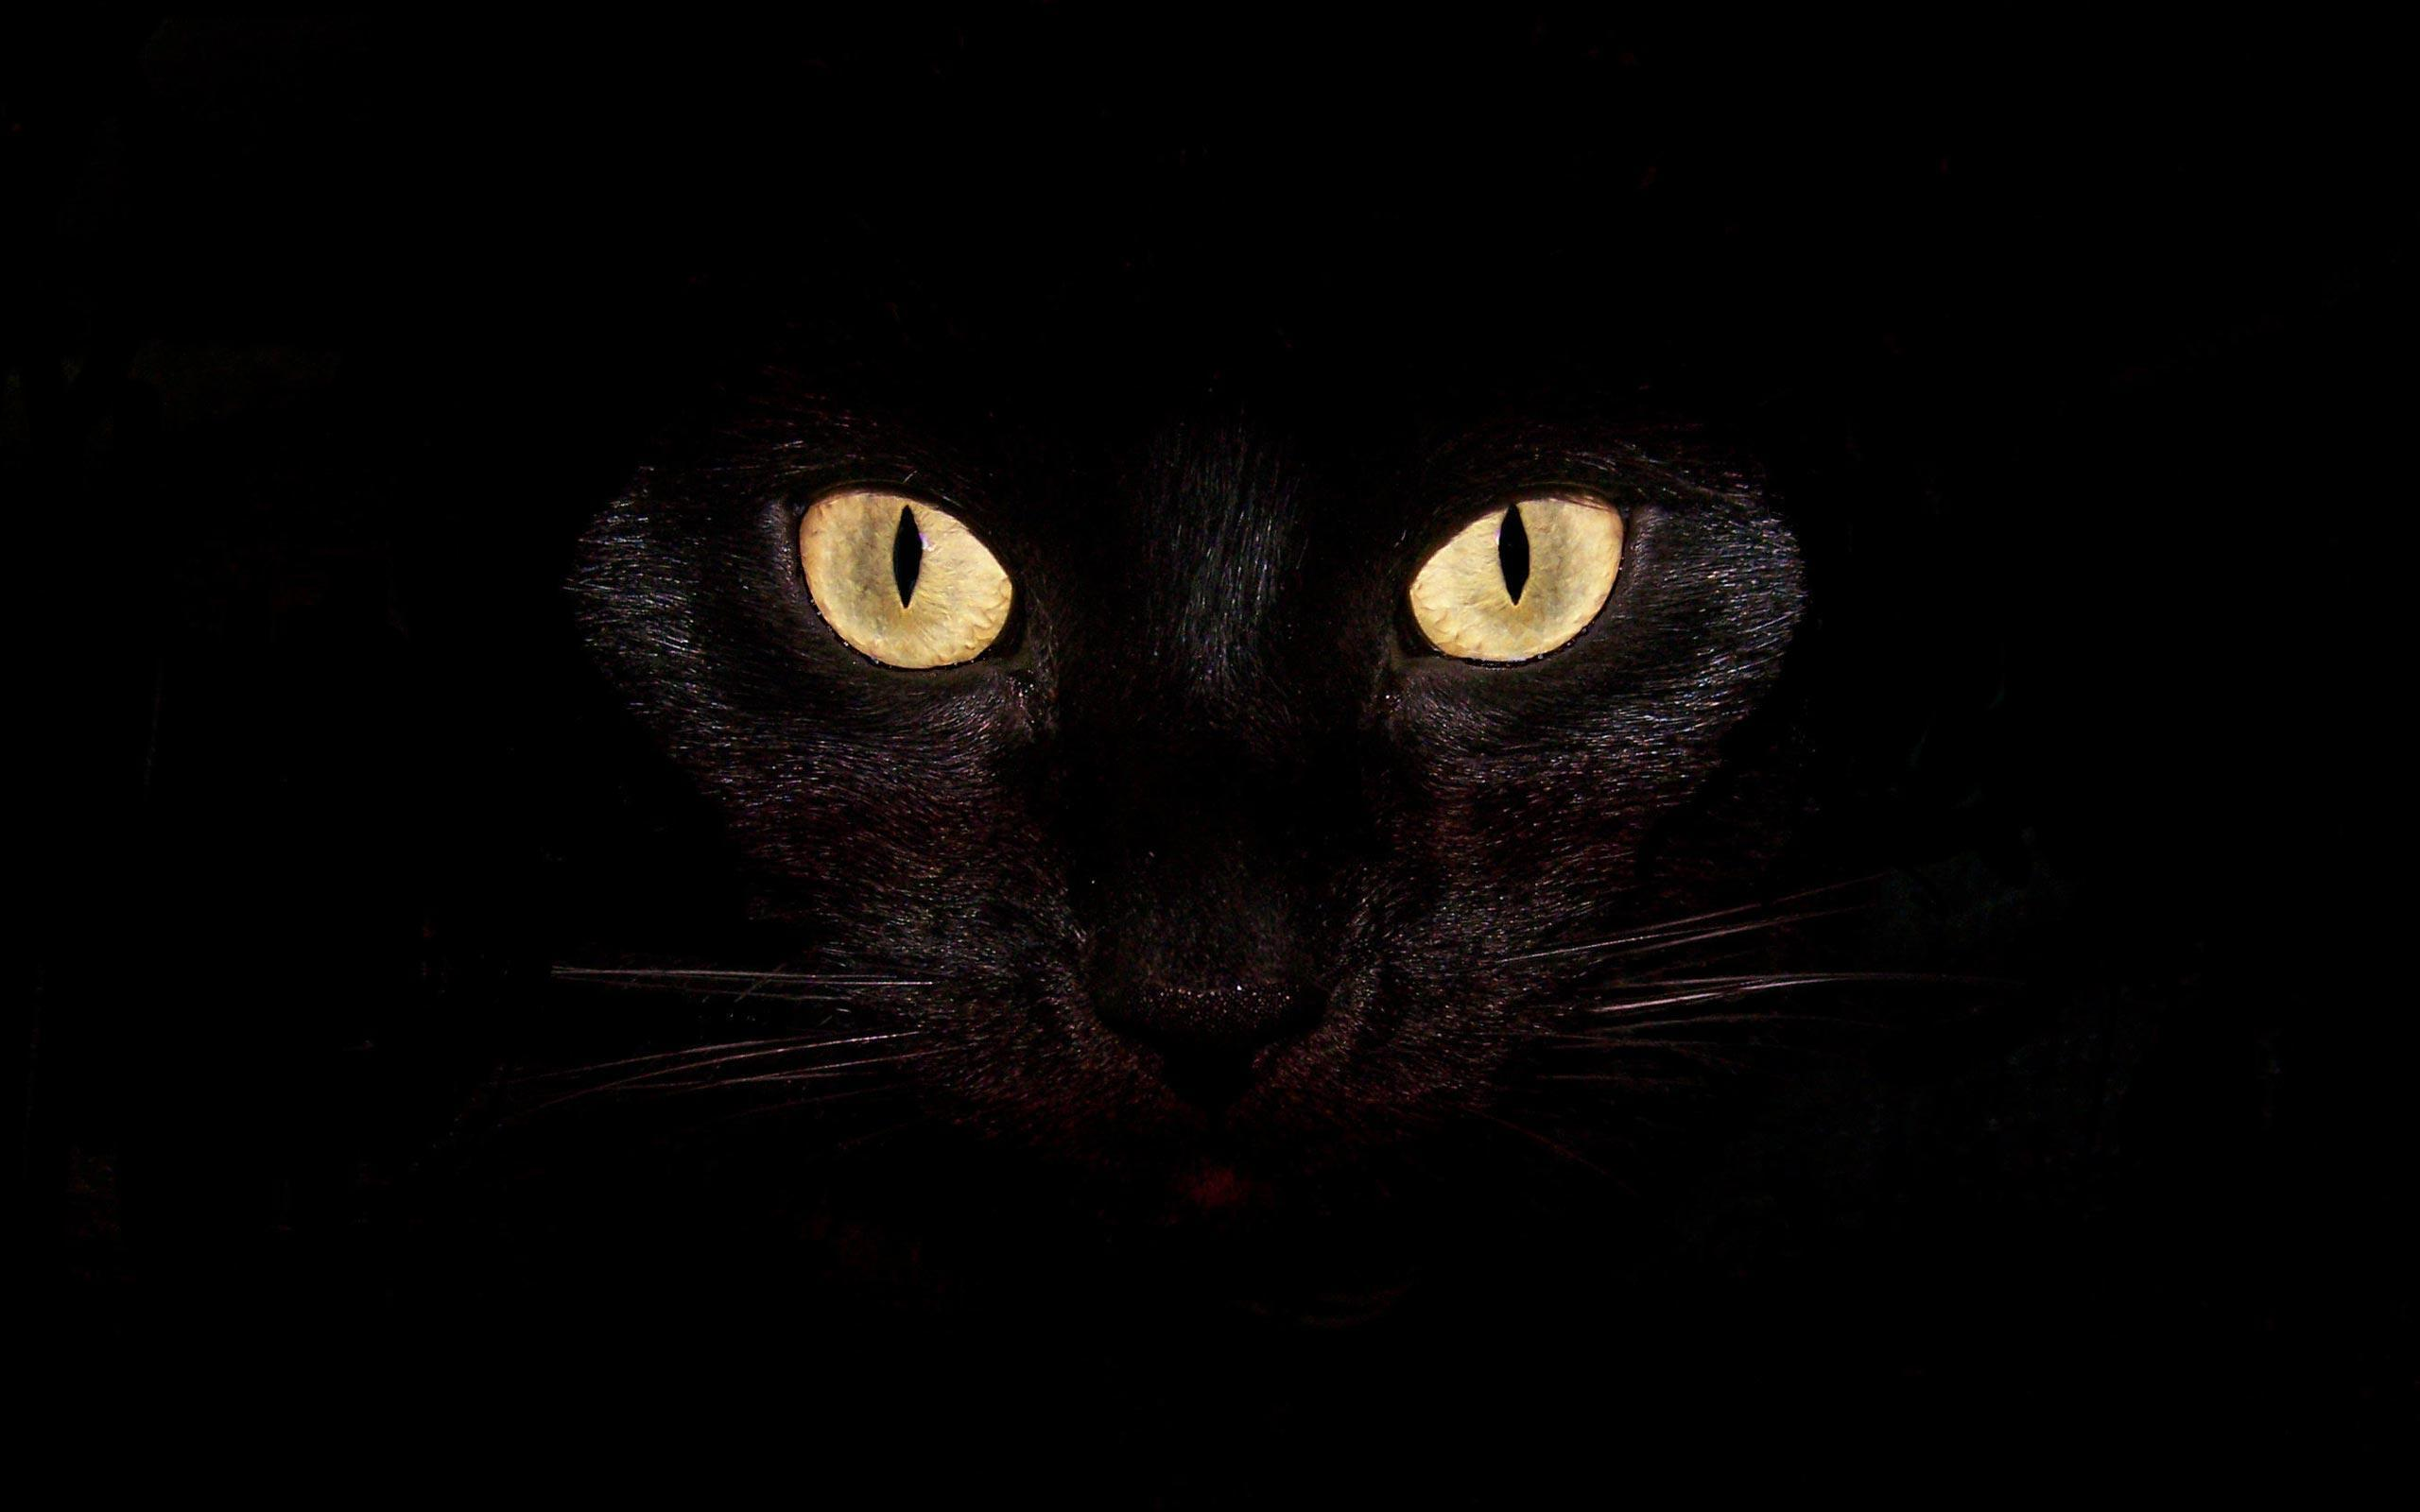 black cat wallpapers full hd wallpaper search page 4